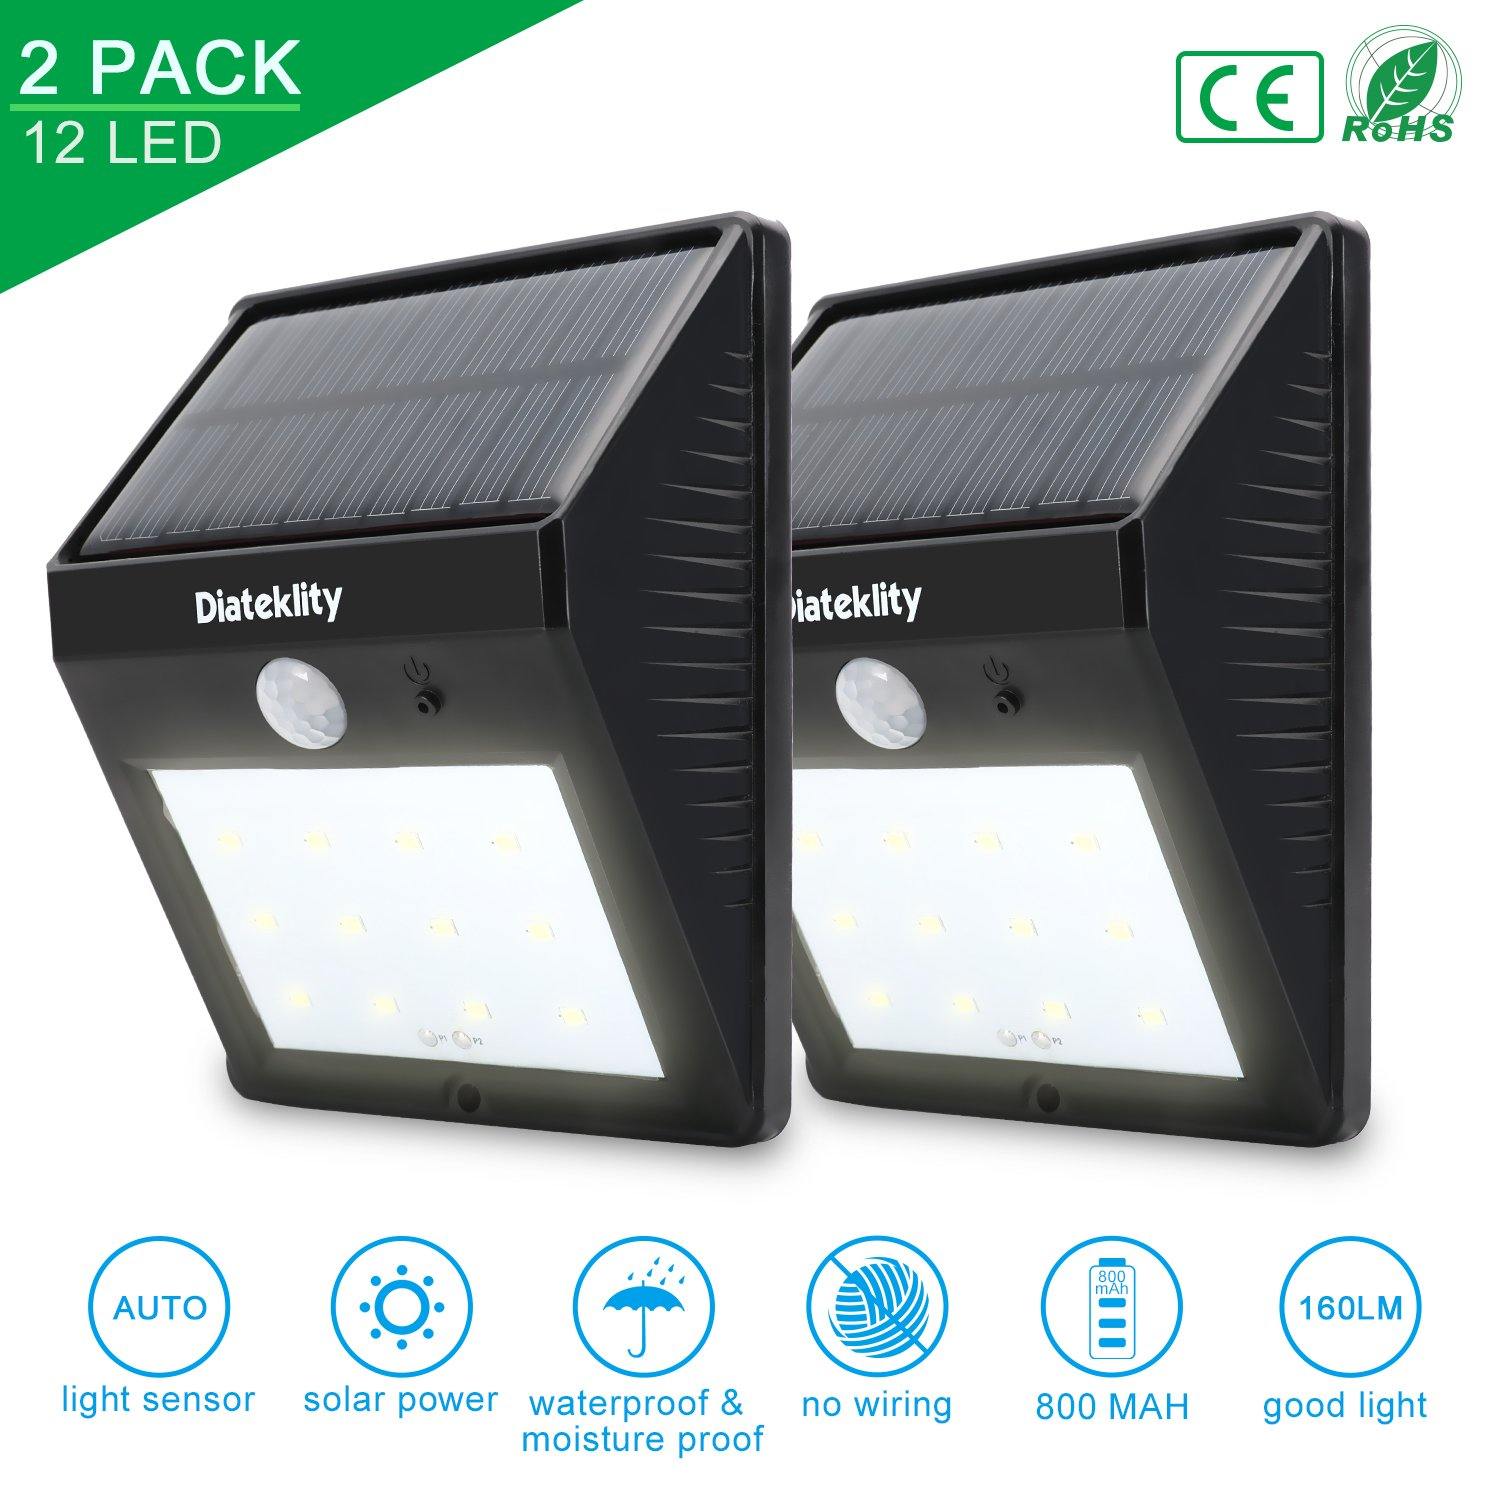 Solar Motion Sensor Lights, Diateklity Super Bright Outdoor 12 LED Solar Powered Waterproof Wireless Security Light for Garden, Deck, Yard, Driveway, Stairs Auto On / Off -No Tools Required (2PCS)